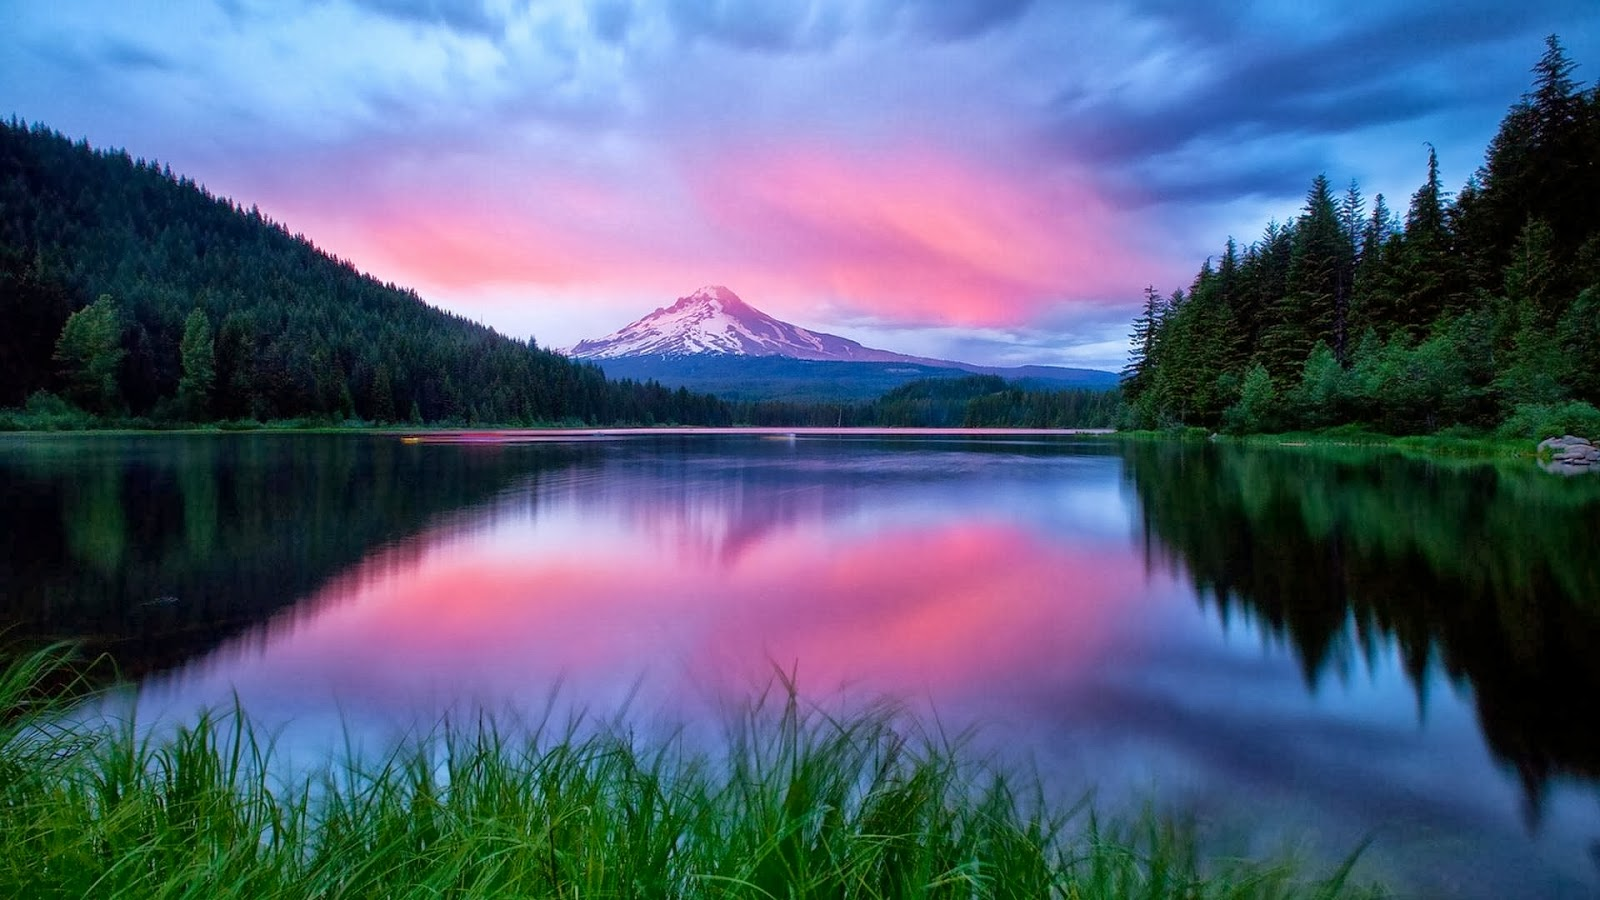 Wallpapers Downloads Full HD High Res Nature Wallpapers For 1600x900